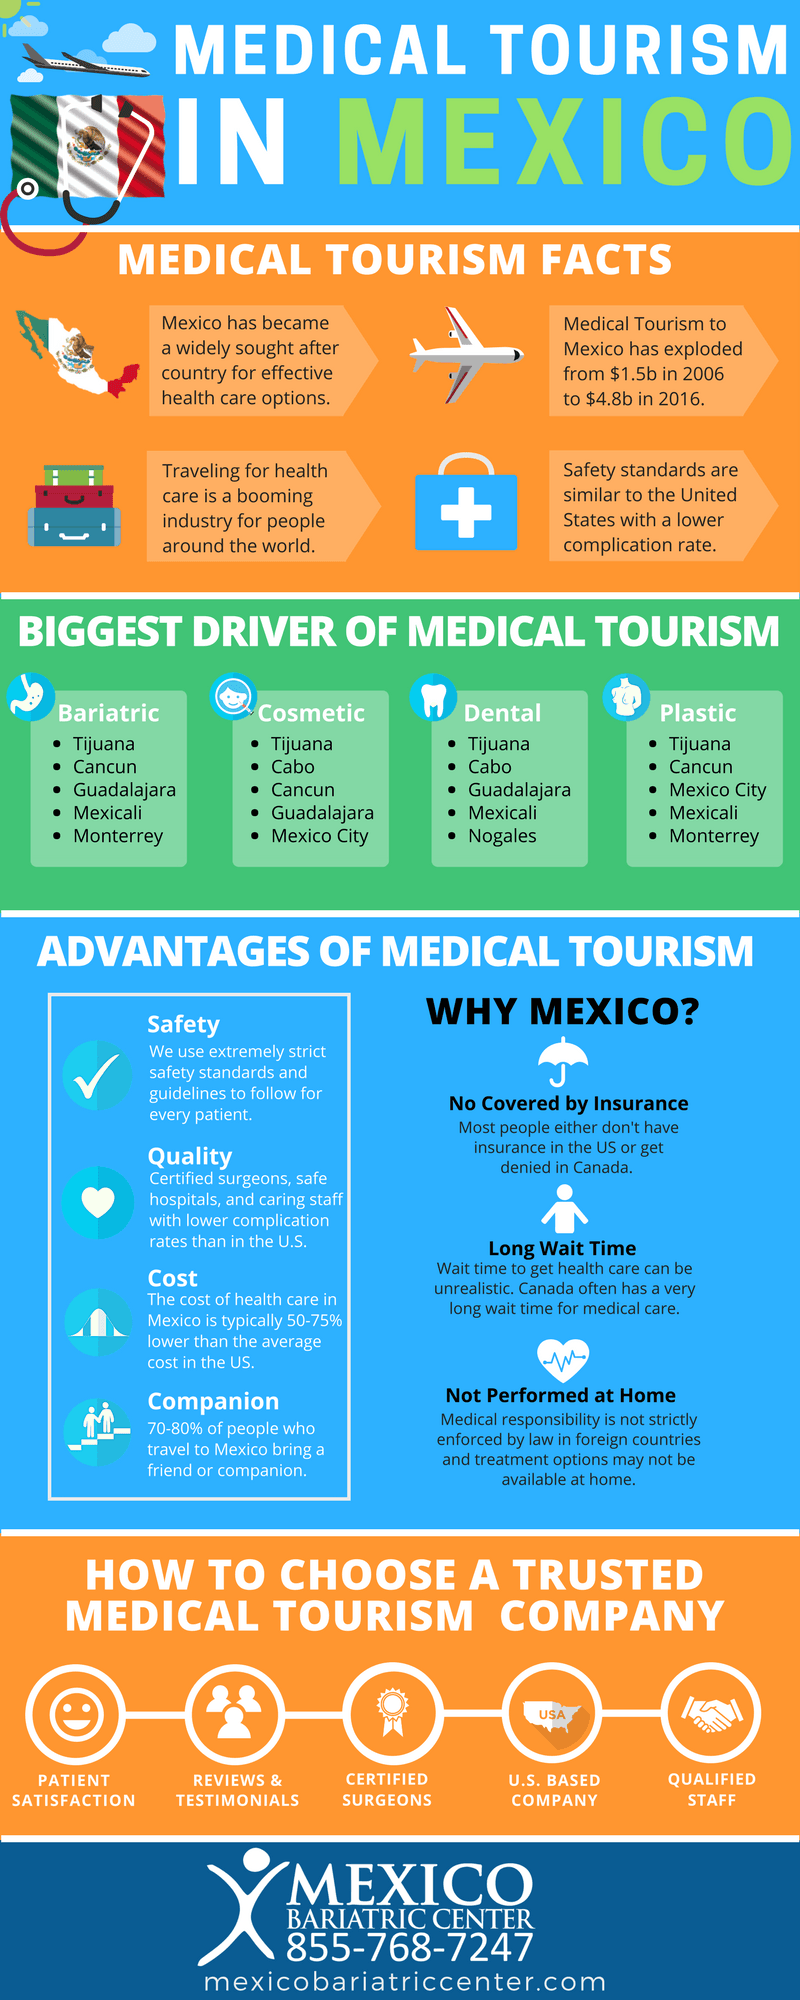 Medical Tourism to Mexico